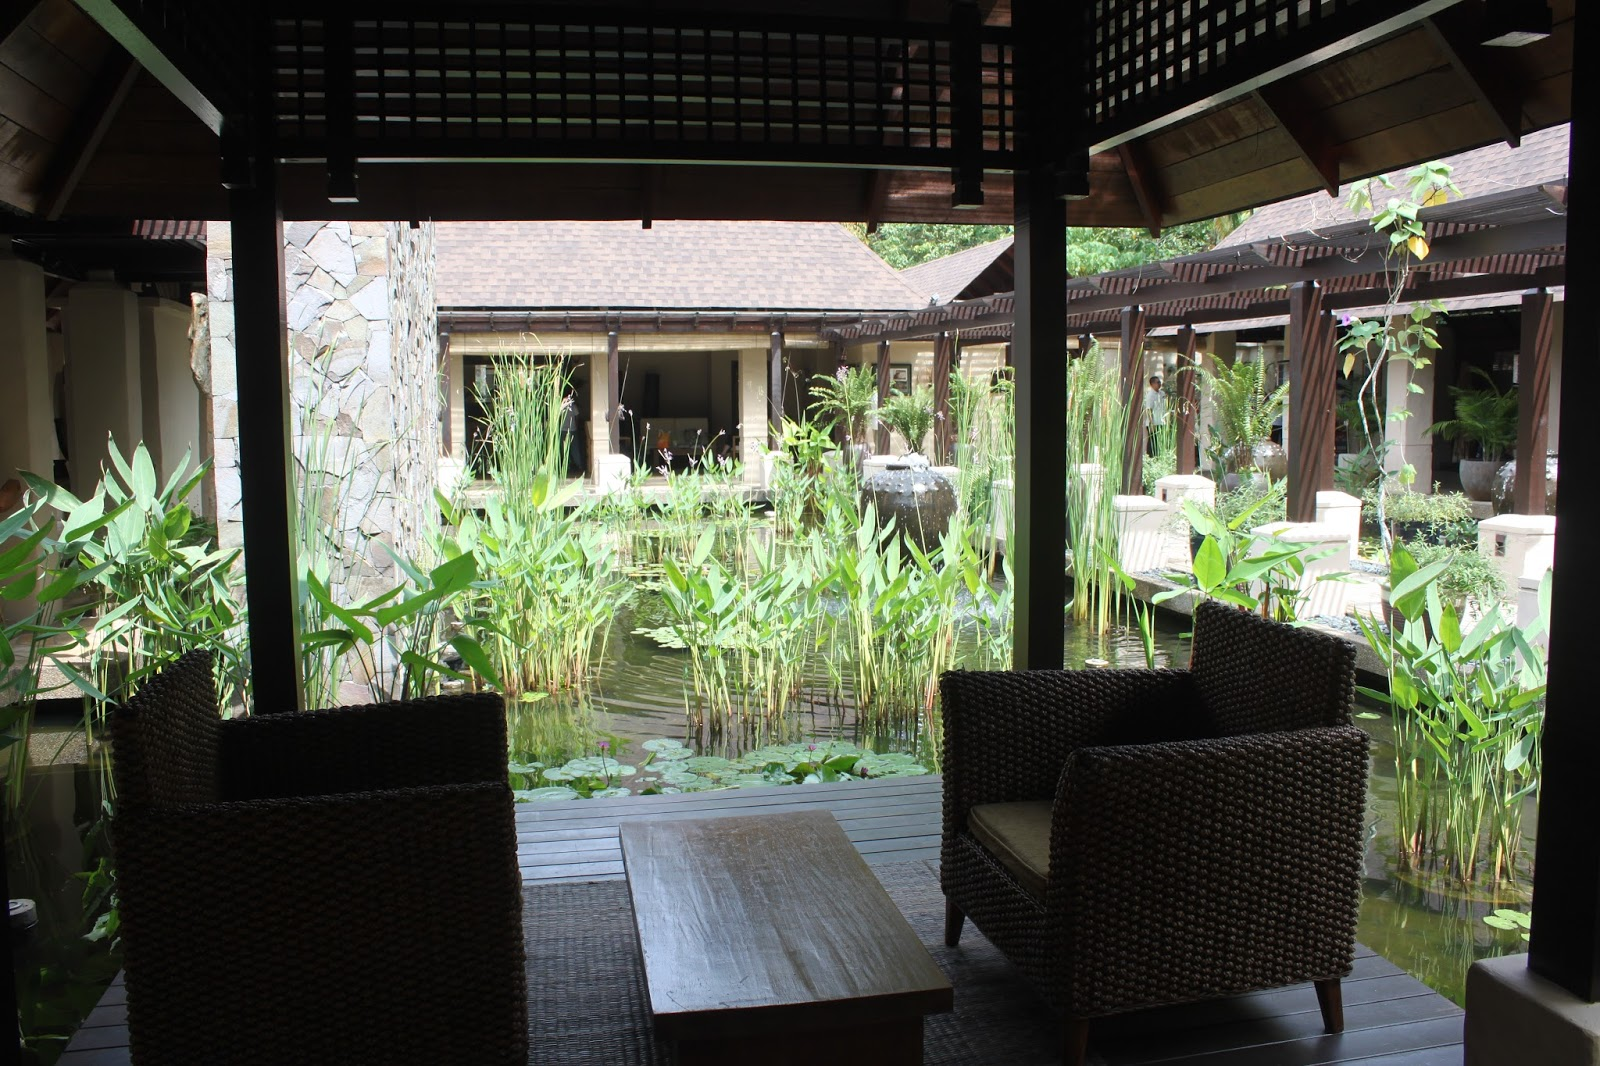 Kee Hua Chee Live Banjaran Hotsprings Retreat In Perak